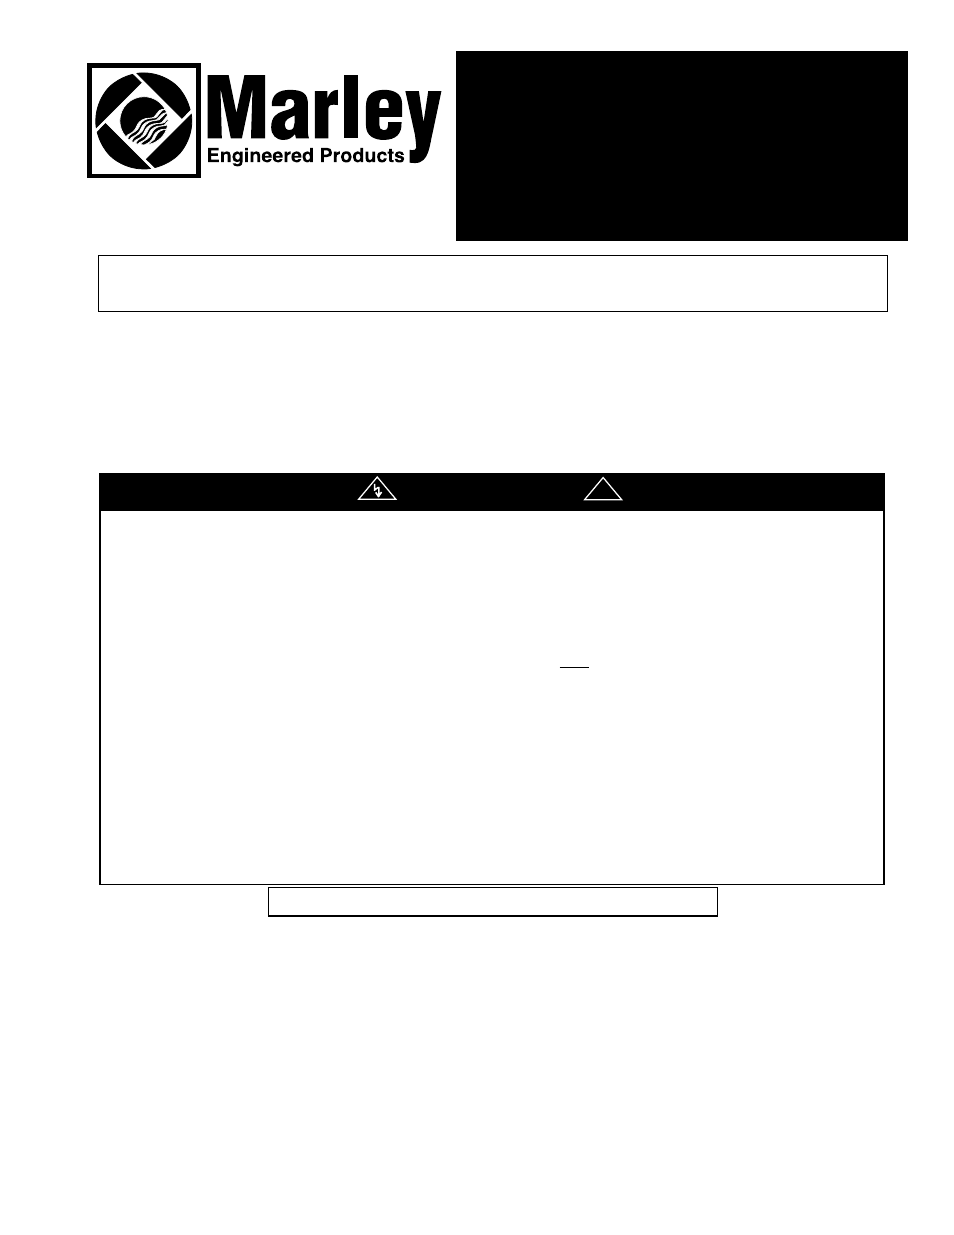 Qmark B660w Infrared Heaters User Manual 4 Pages Also For B560 Radiant Ceiling Heat Wiring Schematic B674w A564